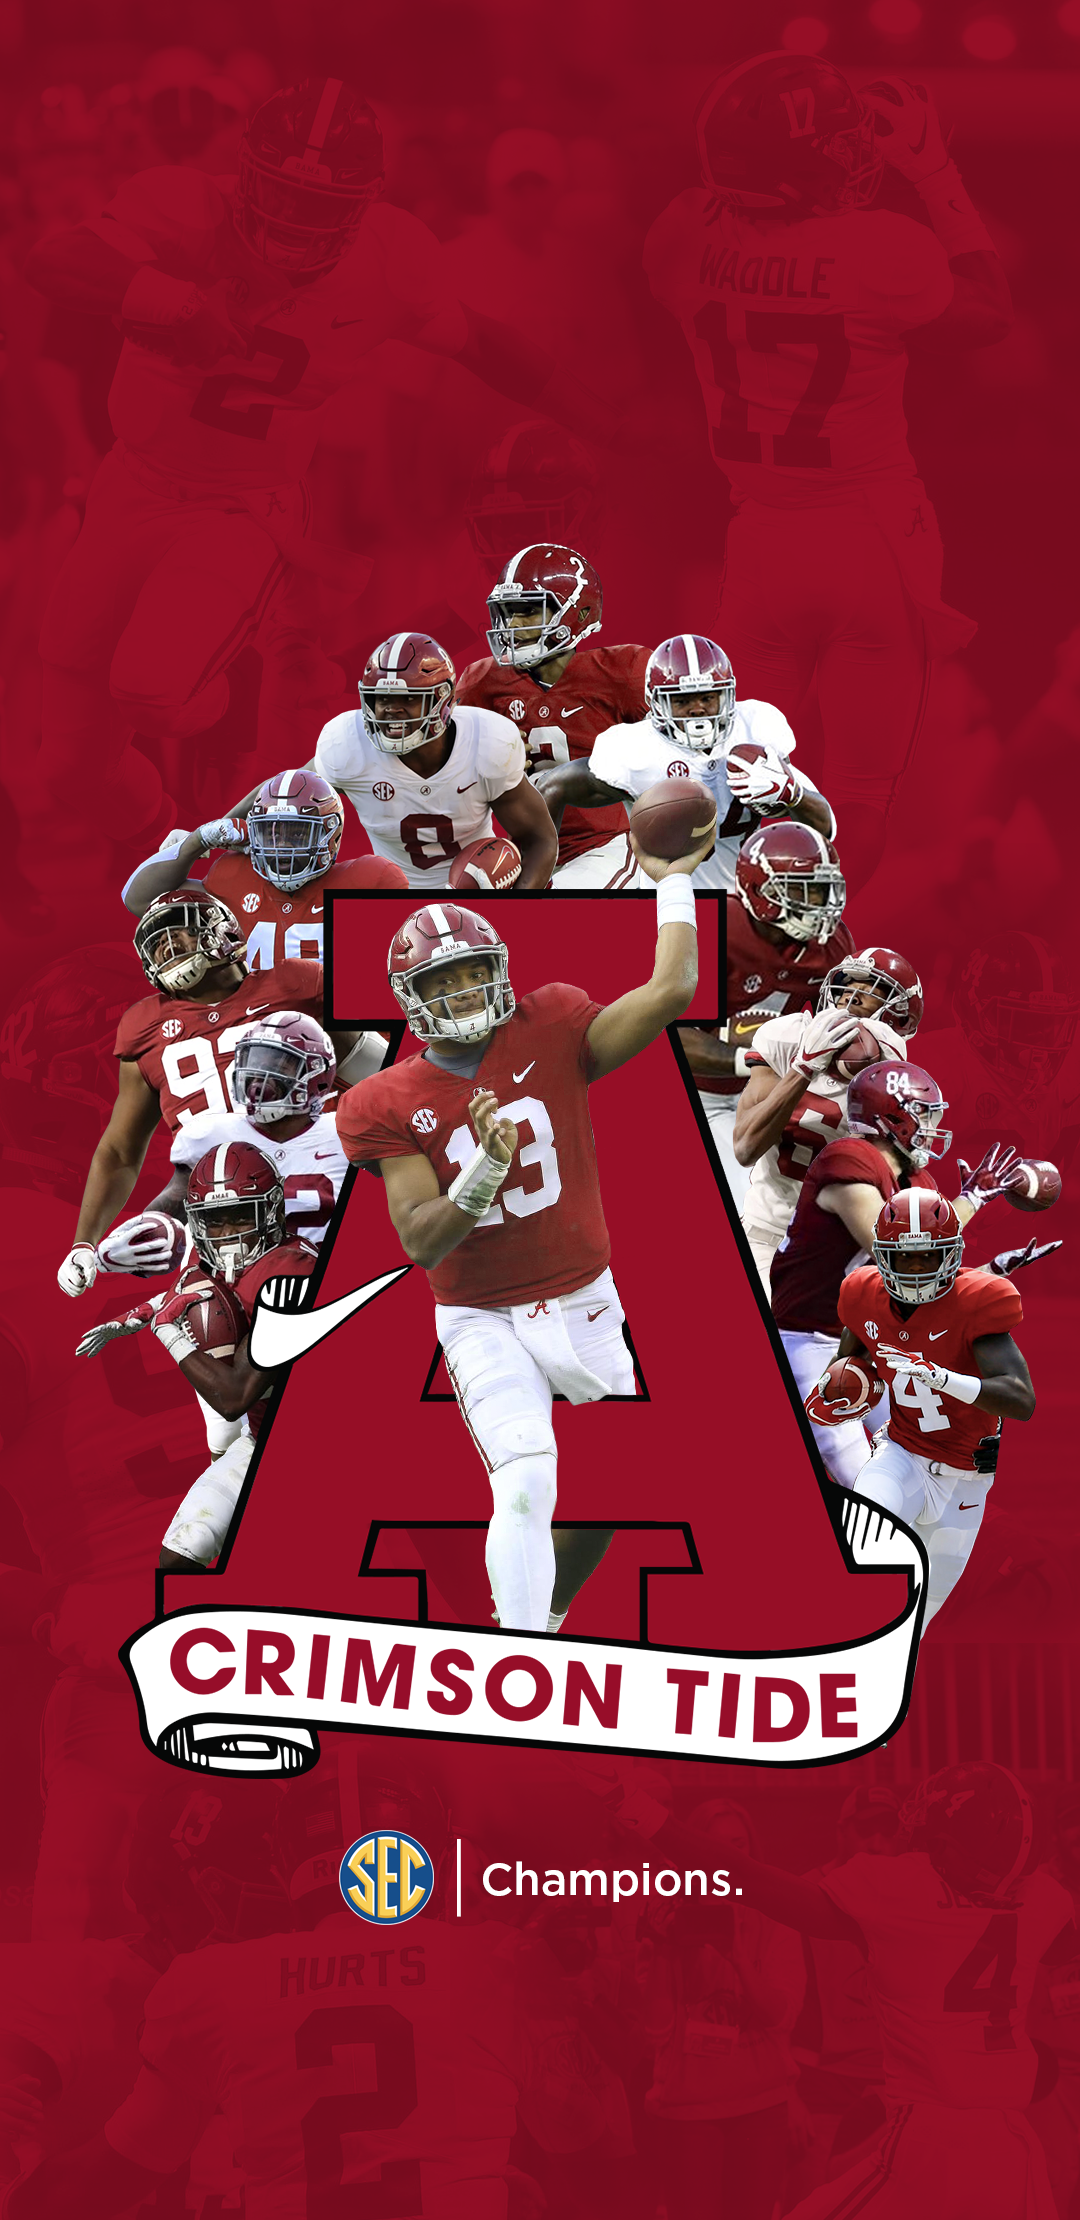 SEC Champions Phone Wallpaper more options in the comments 1080x2220